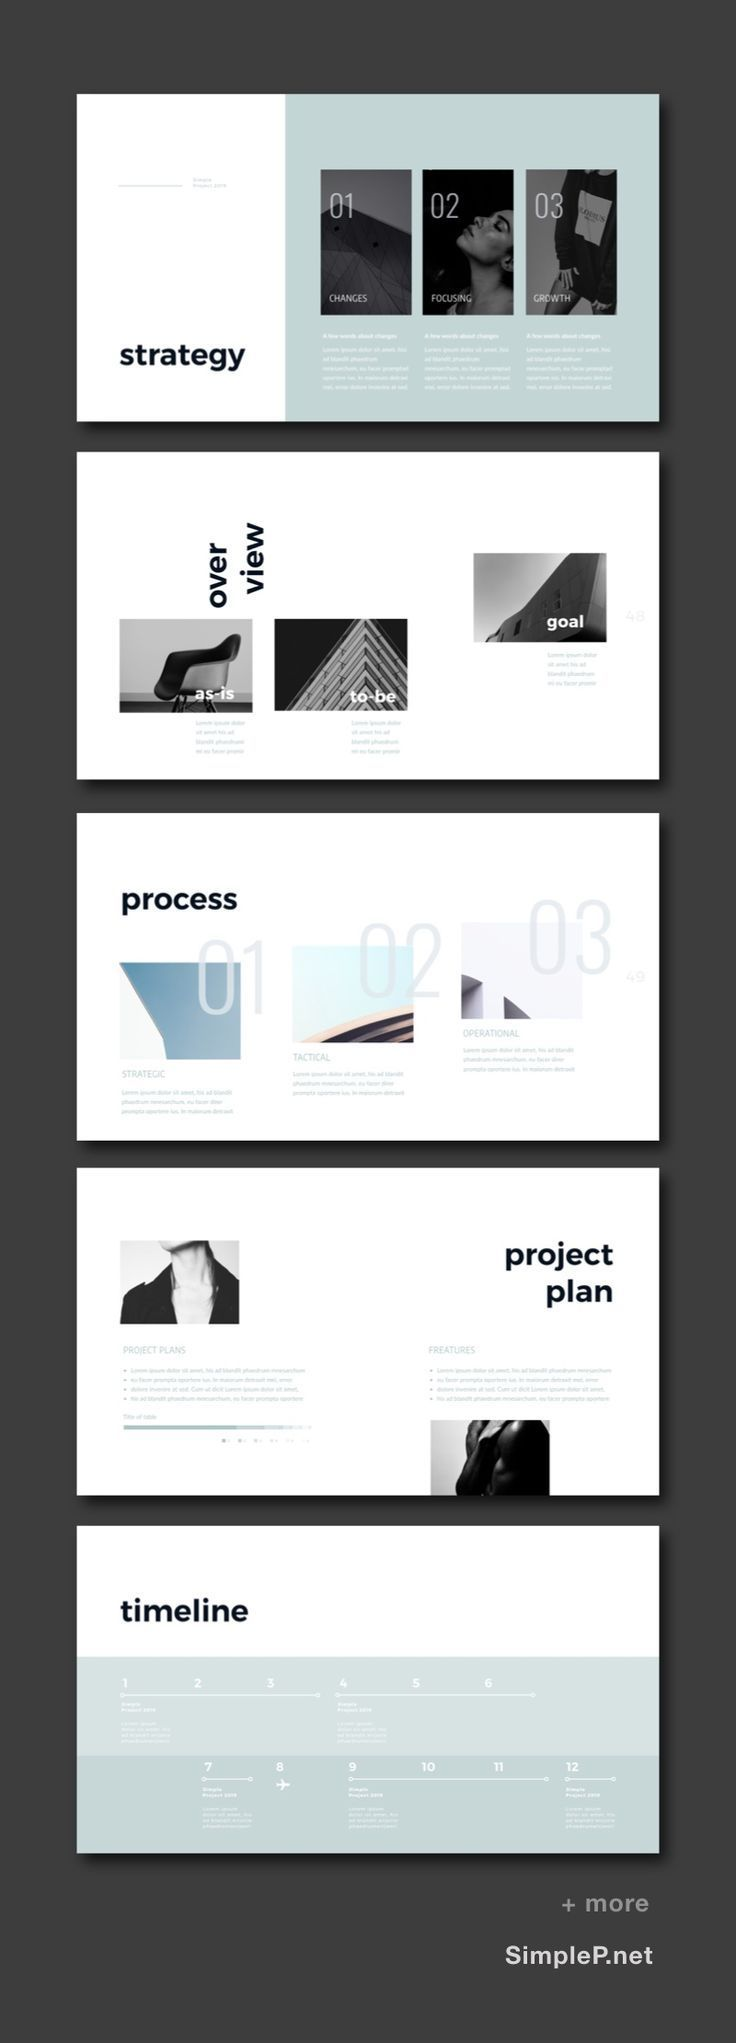 zero presentation powerpoint template strategy overview process